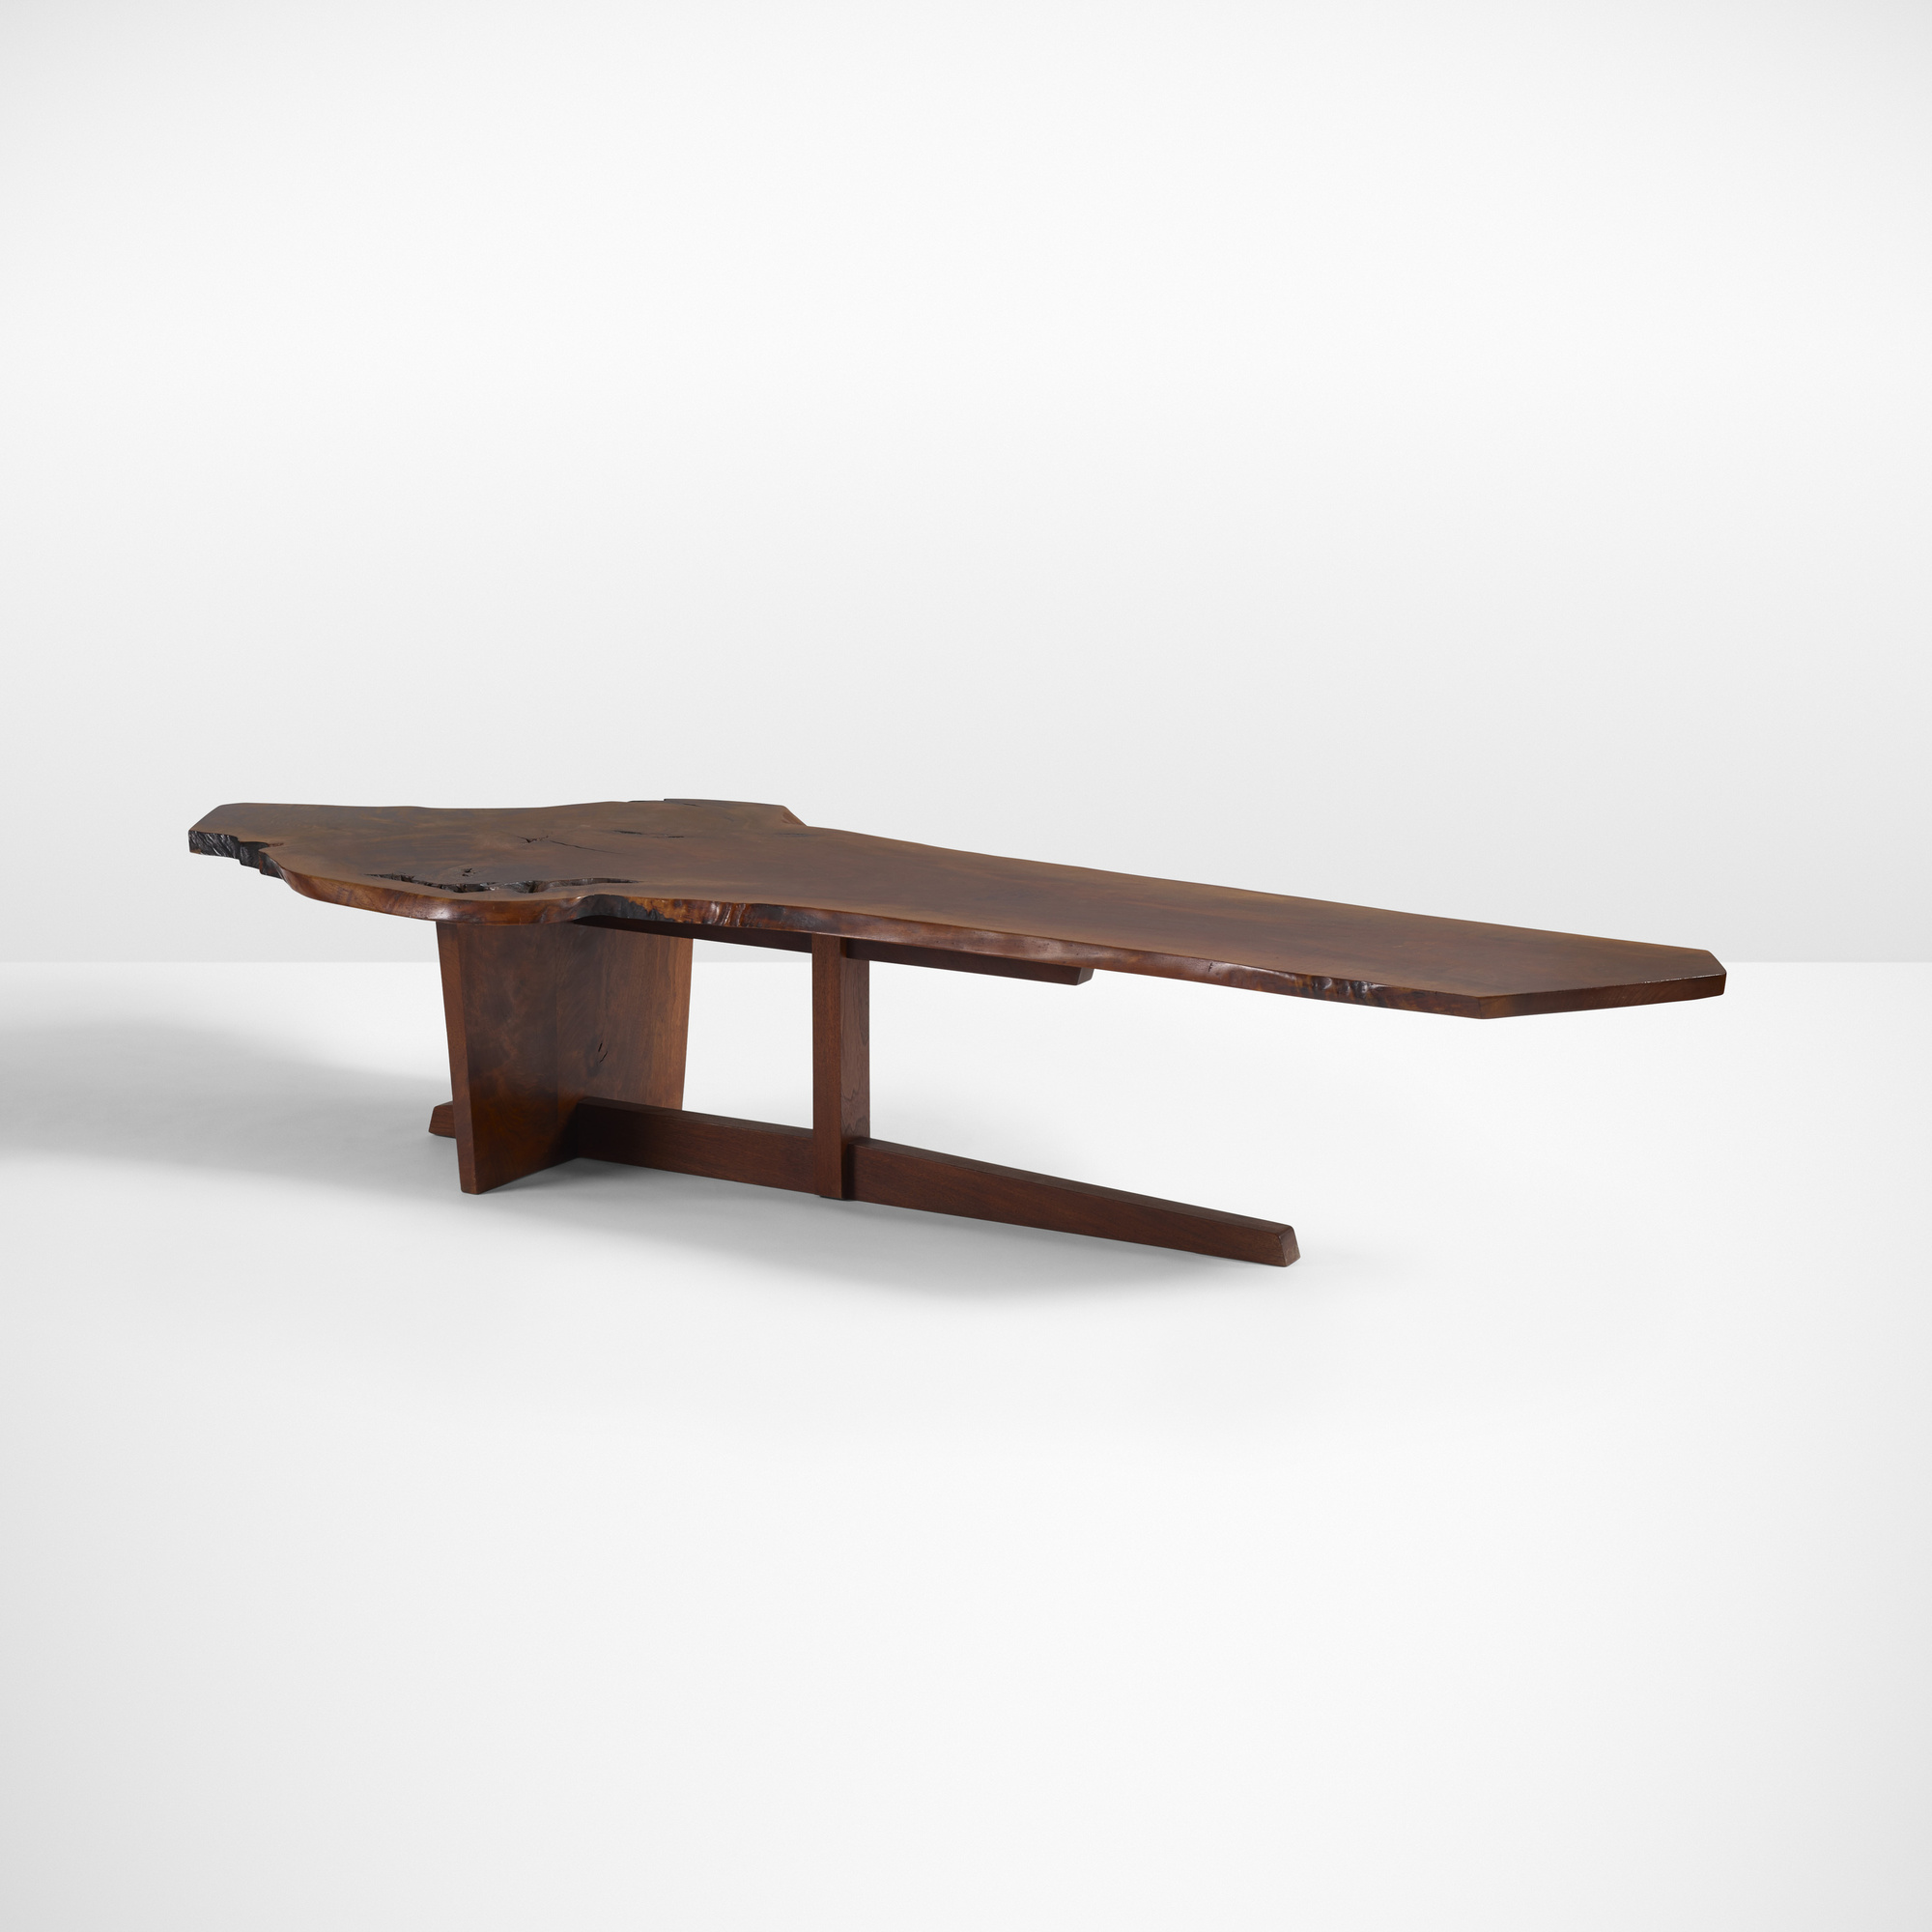 Incroyable 26: George Nakashima / Important Minguren II Coffee Table (1 Of 4)